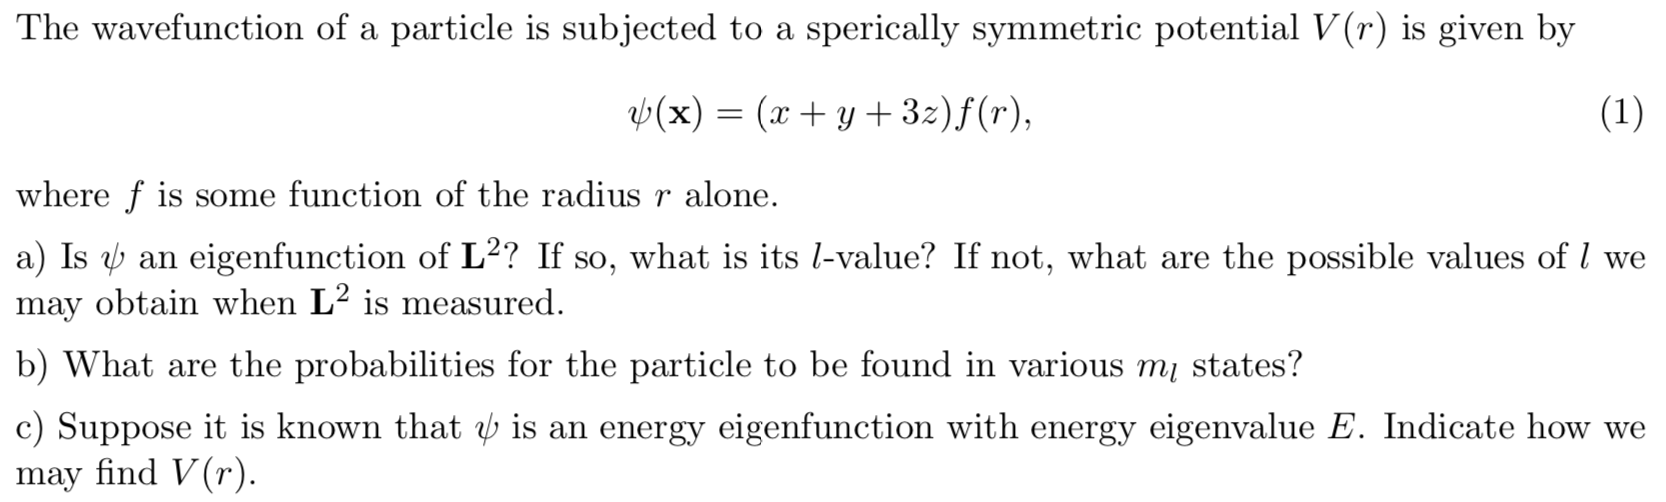 The wavefunction of a particle is subjected to a sperically symmetric potential V(r) is given by b(x)= (xy 32)f(r), (1) where f is some function of the radius r alone. a) Is an eigenfunction of L2? If so, what is its l-value? If not, what are the possible values of / we may obtain when L2 is measured. b) What are the probabilities for the particle to be found in various m states? c) Suppose it is known that b is an energy eigenfunction with energy eigenvalue E. Indicate how we may find V(r).